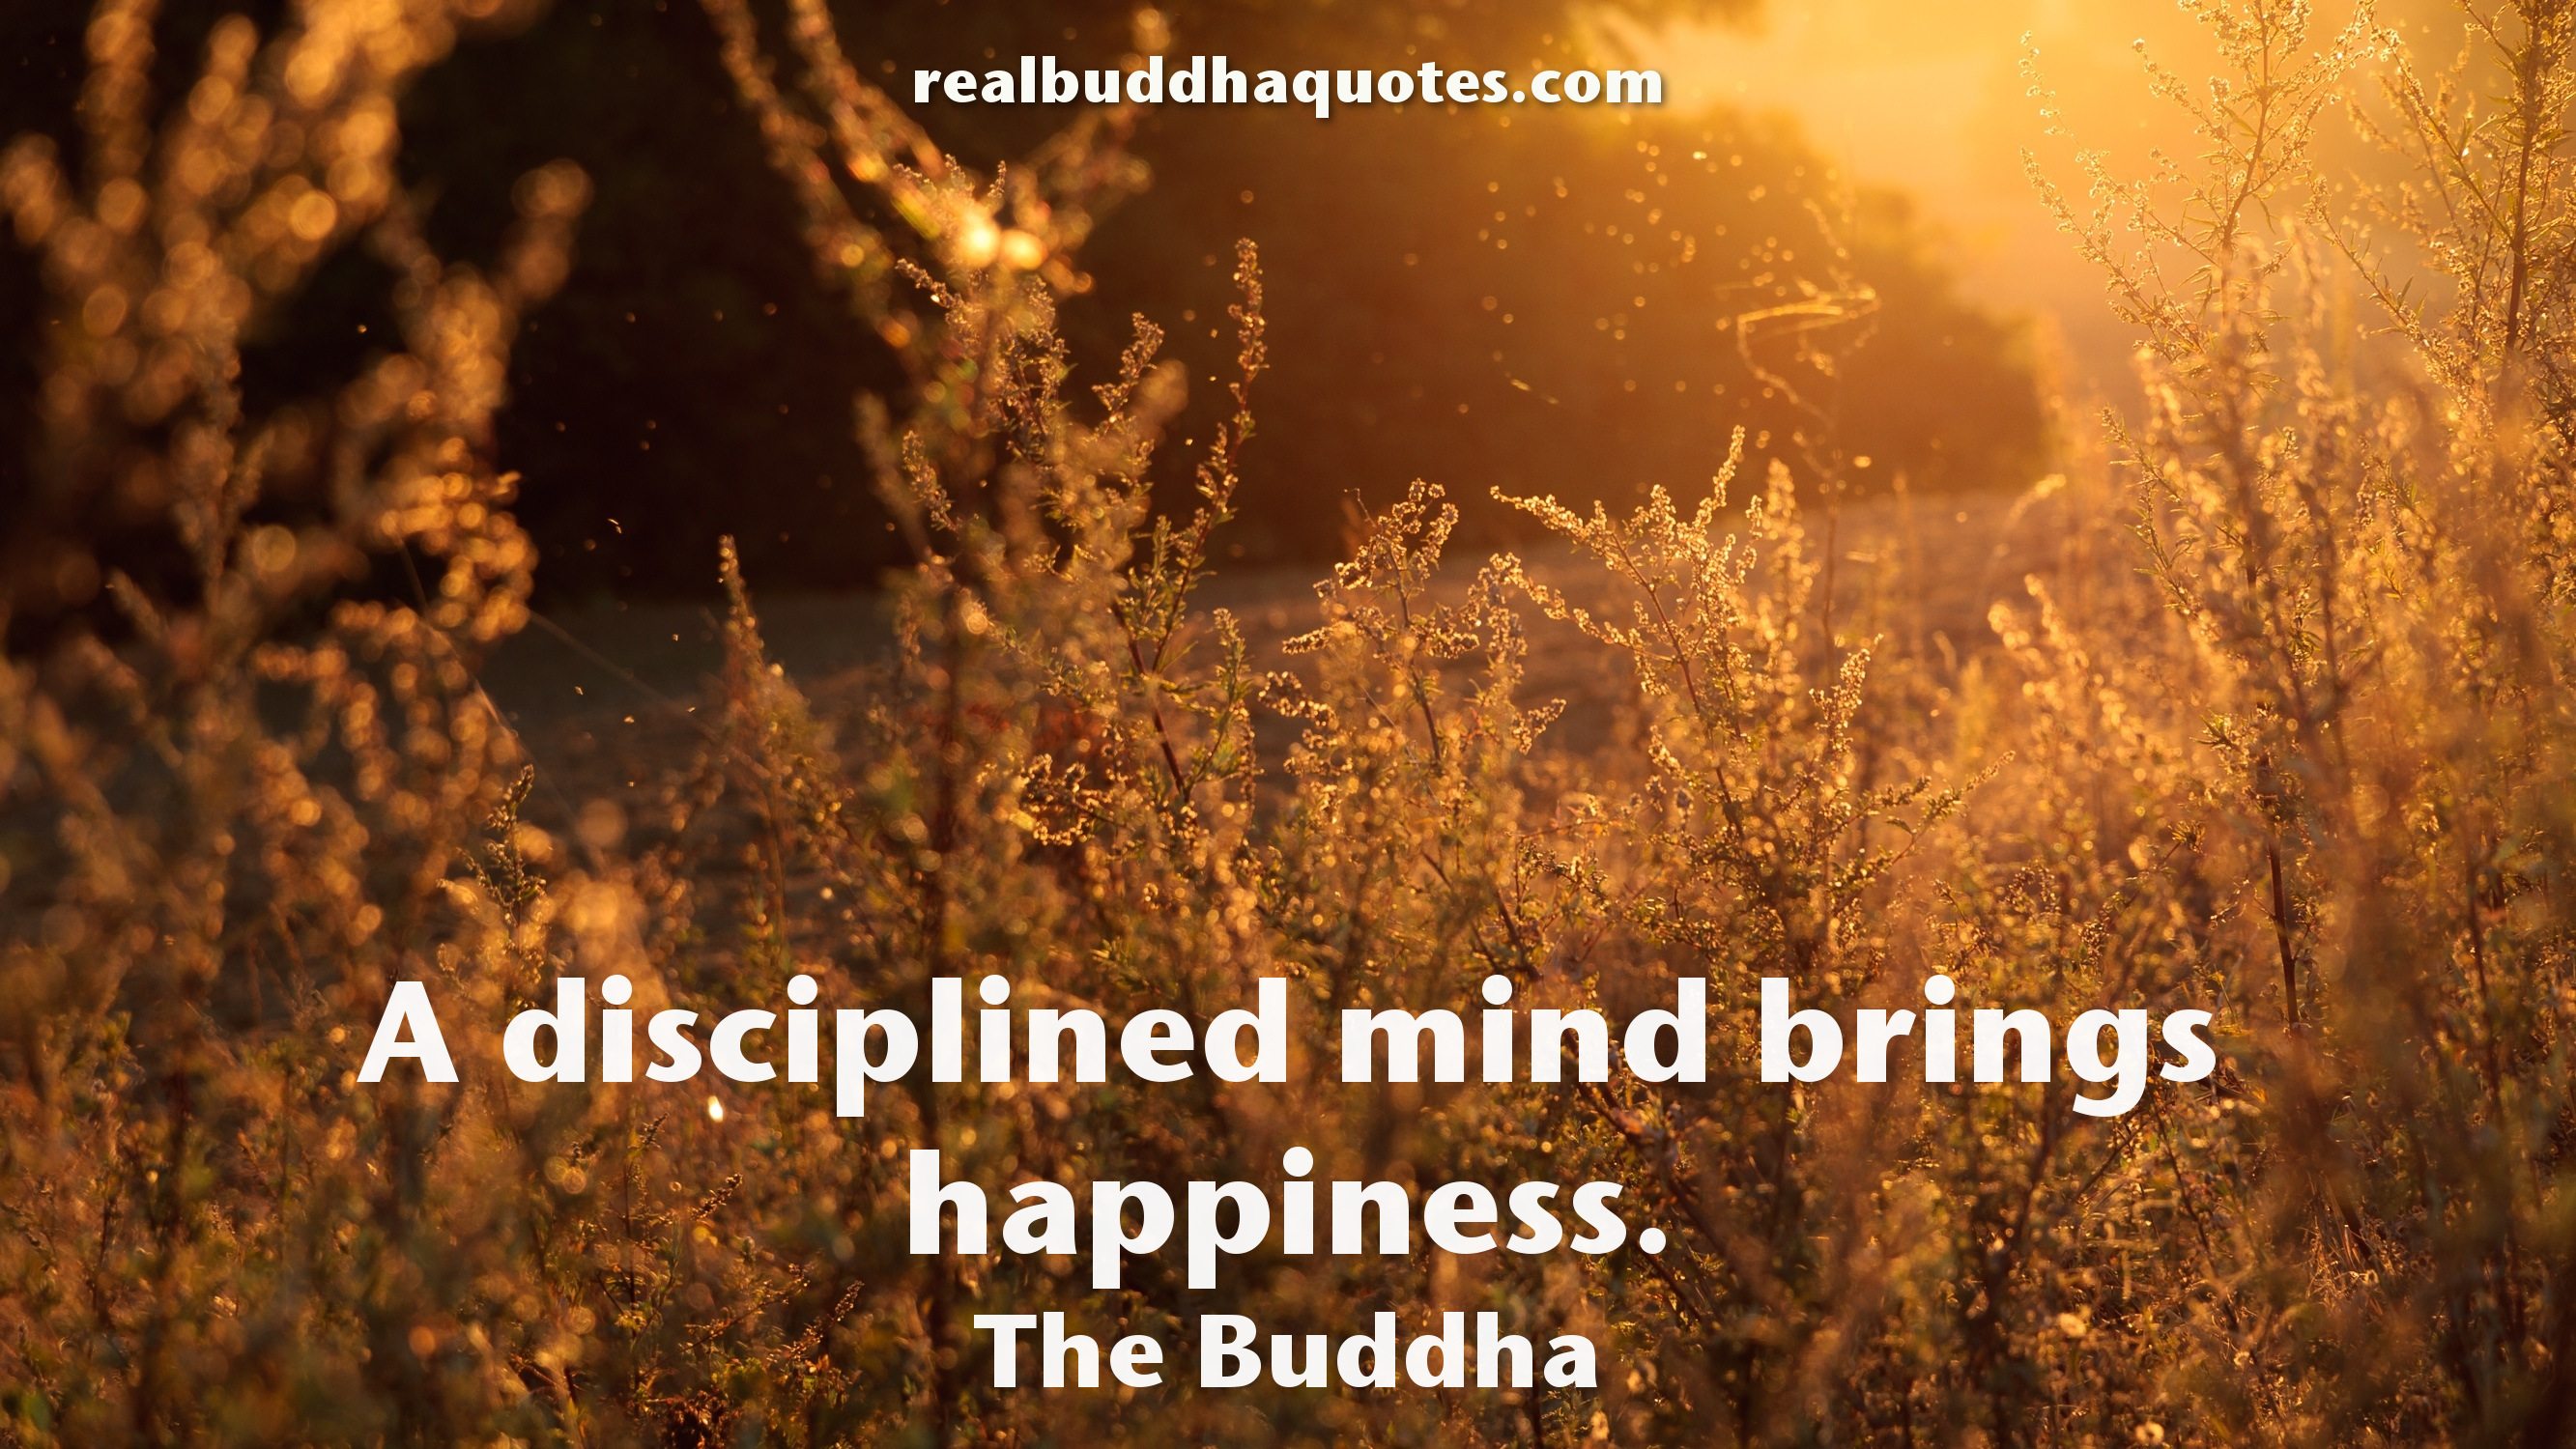 Buddha Quotes On Happiness Happiness  Real Buddha Quotes